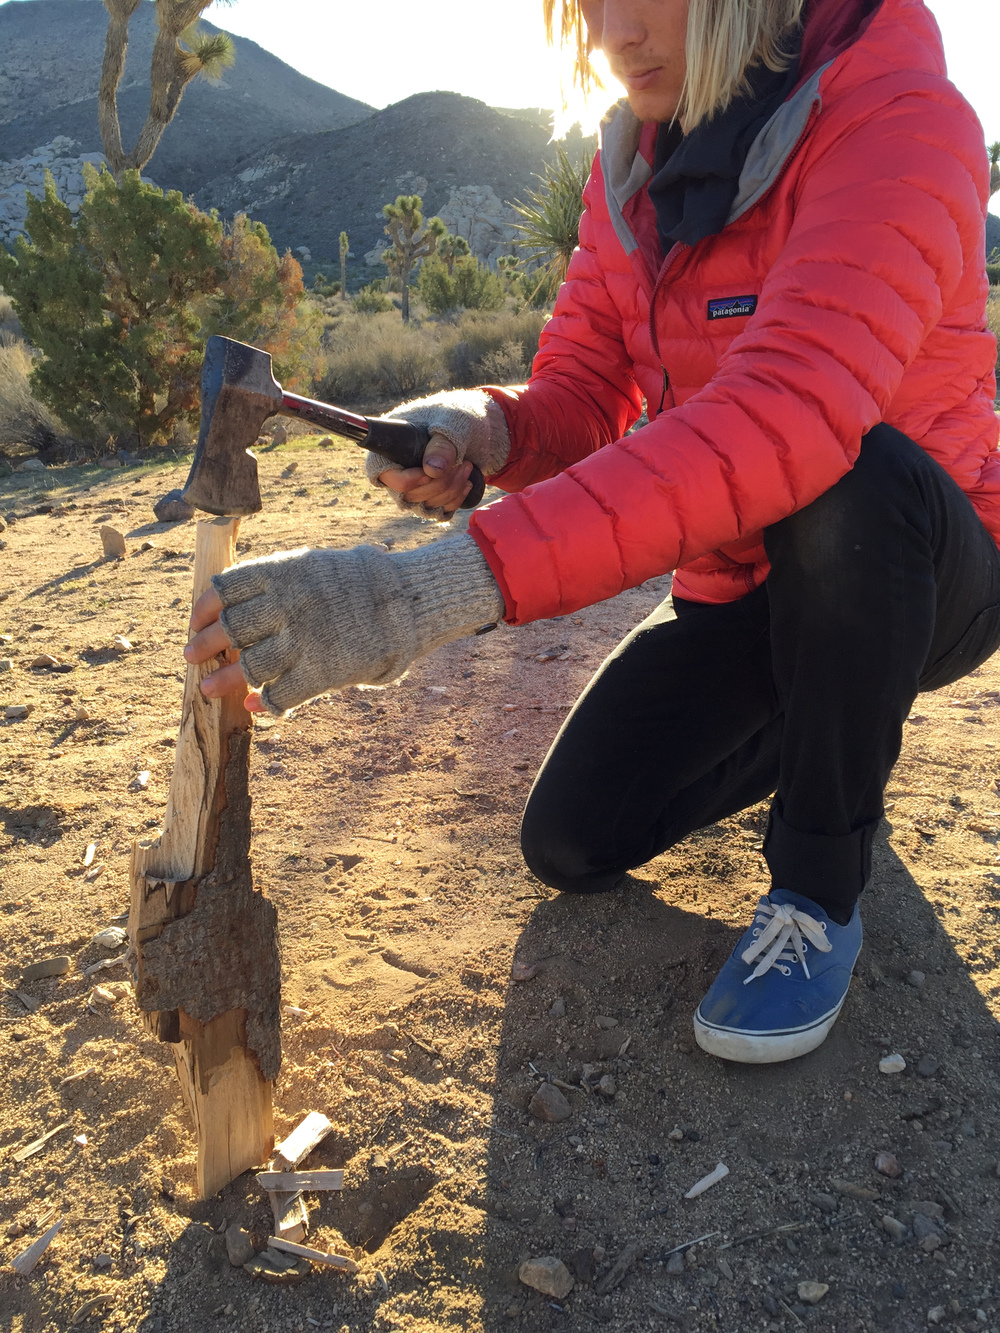 Starting up a fire during a chilly morning in the desert. We woke to find that our water supply we left outside was almost frozen solid.